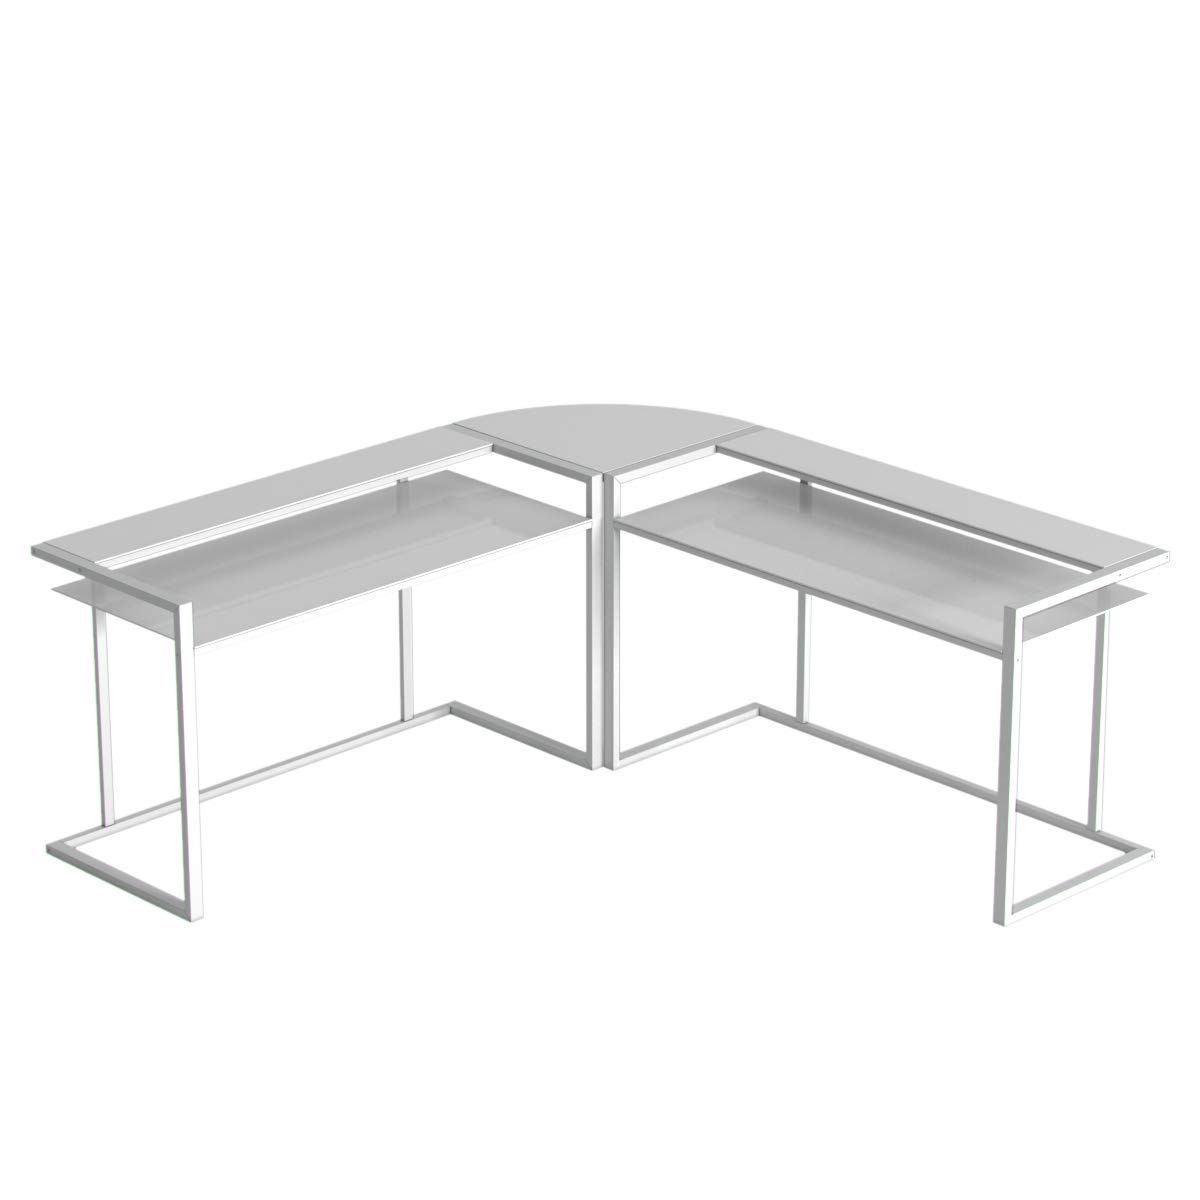 huge selection of b645a 90e10 Belmac 3-Piece Corner C Frame L Shaped Computer Desk in White Glass and  White Frame